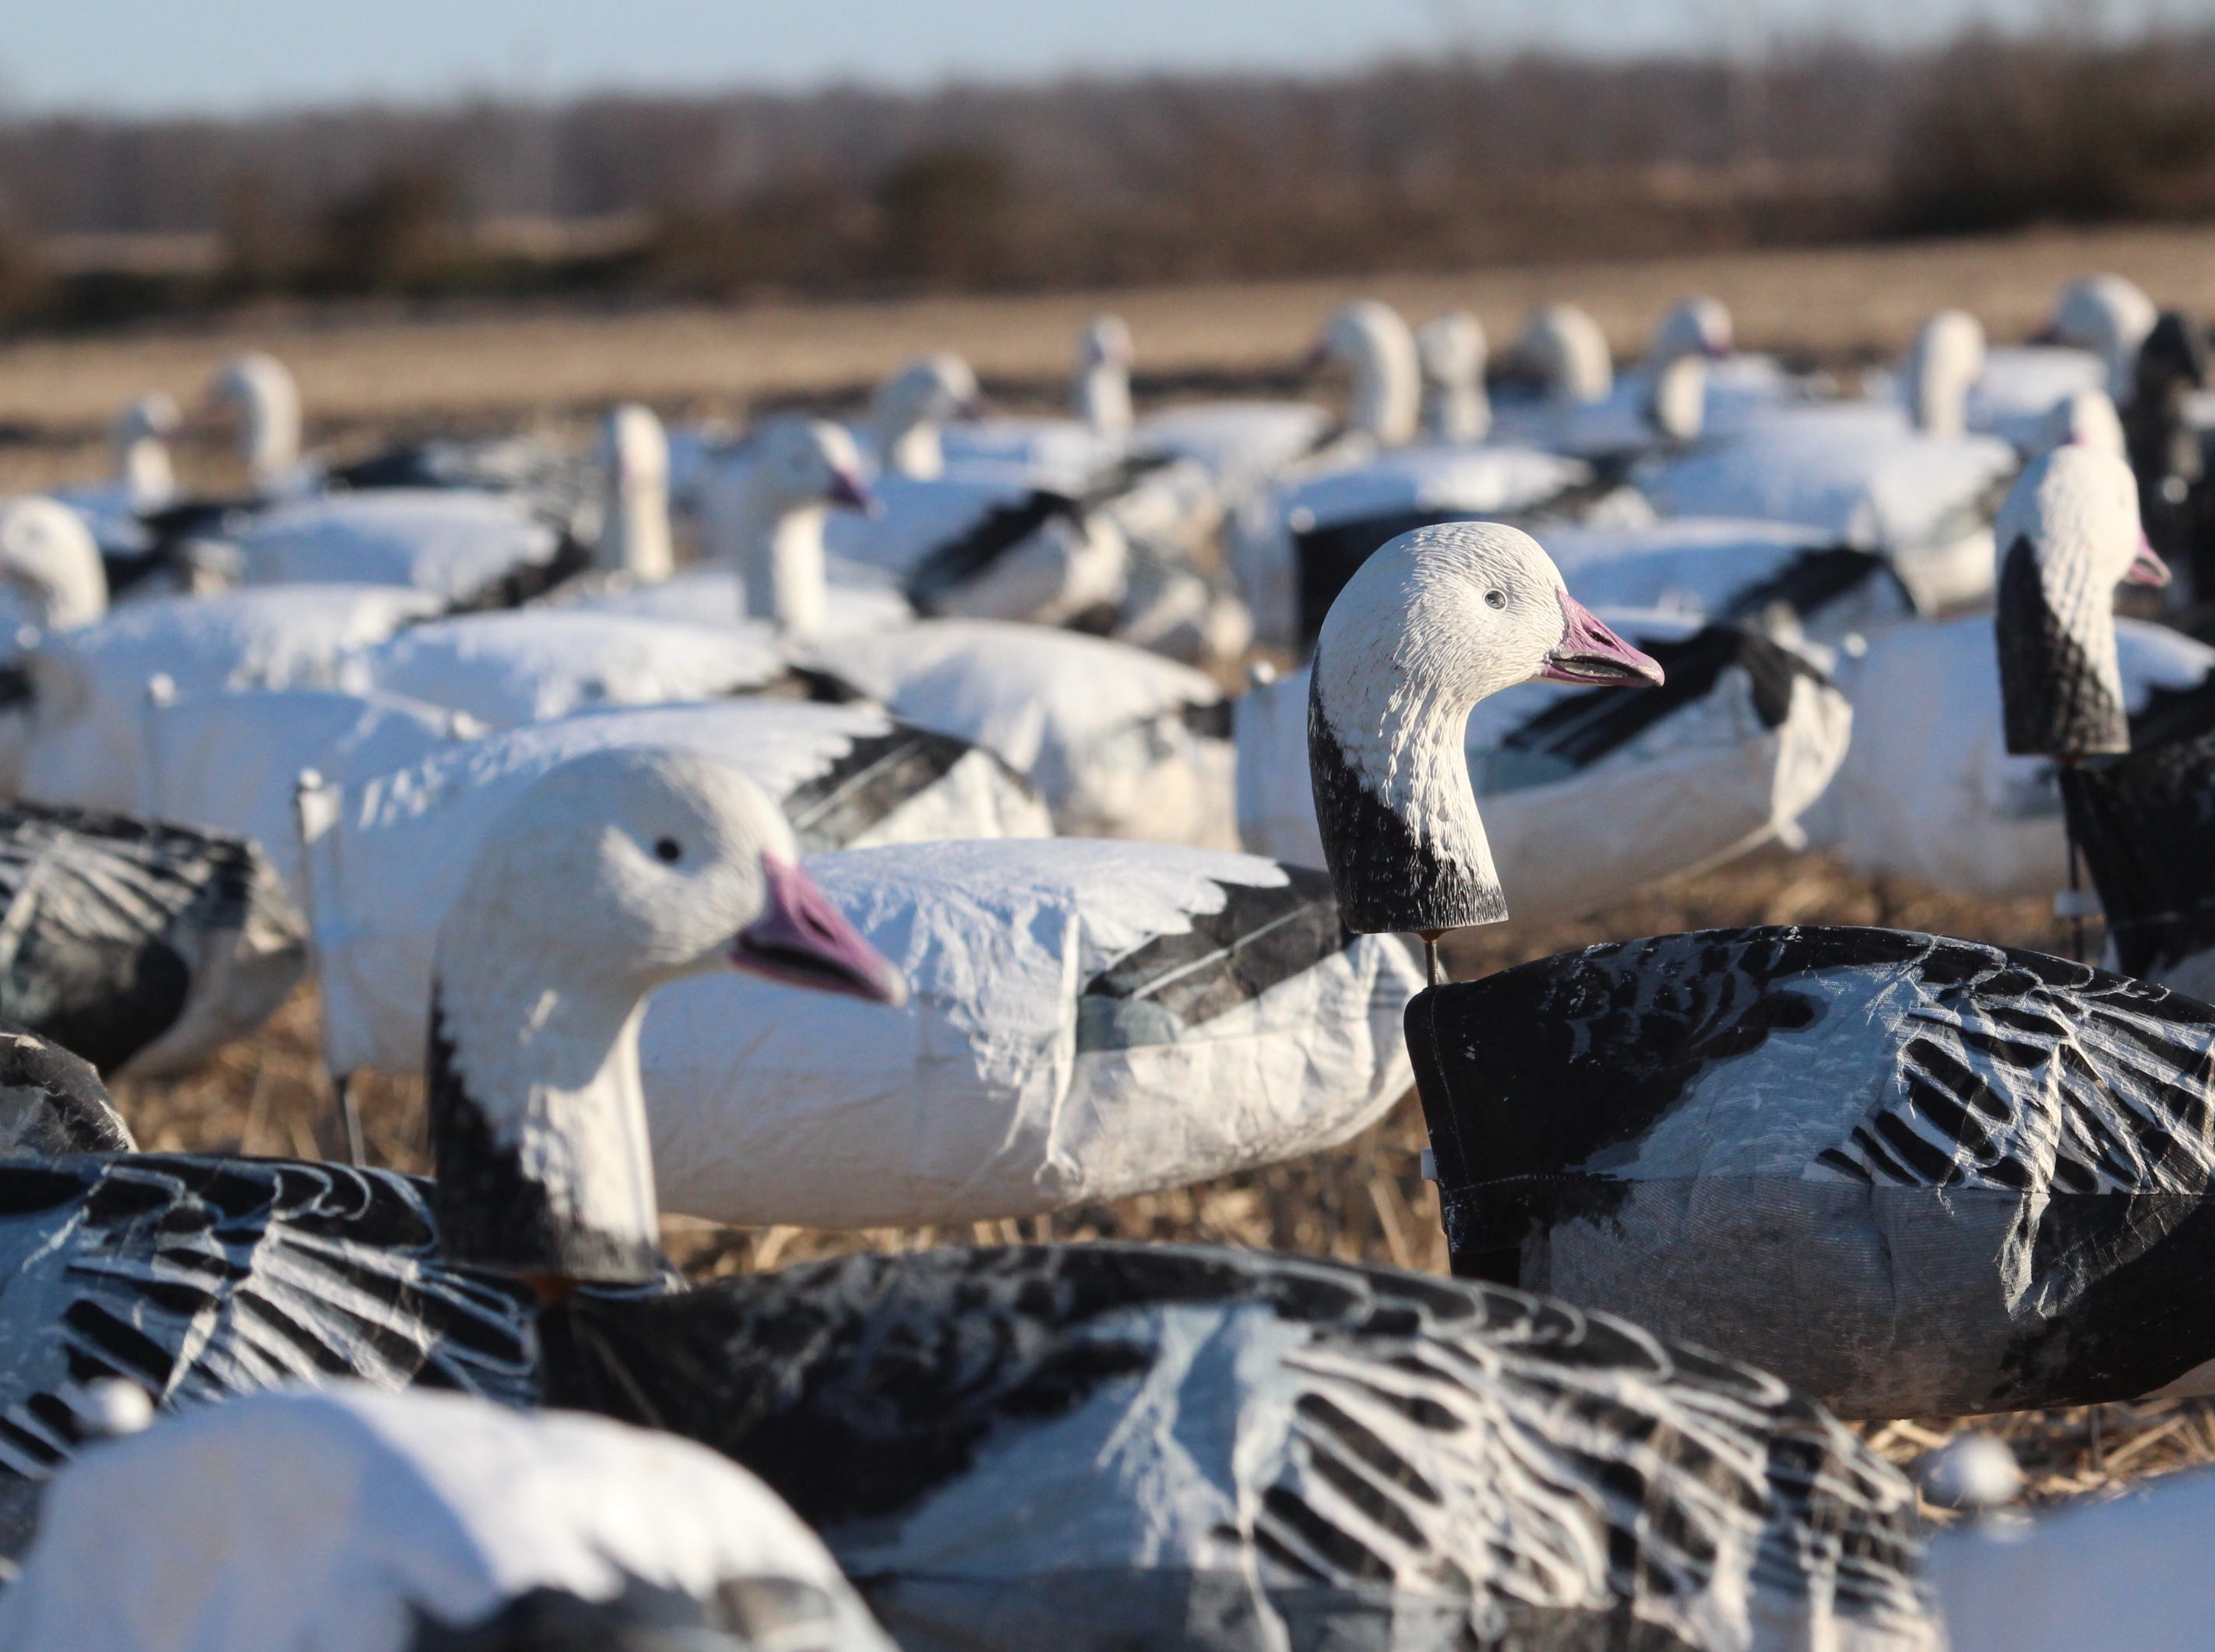 The group of Wisconsinites hunted in layout blinds set in a field of 2,200 decoys.